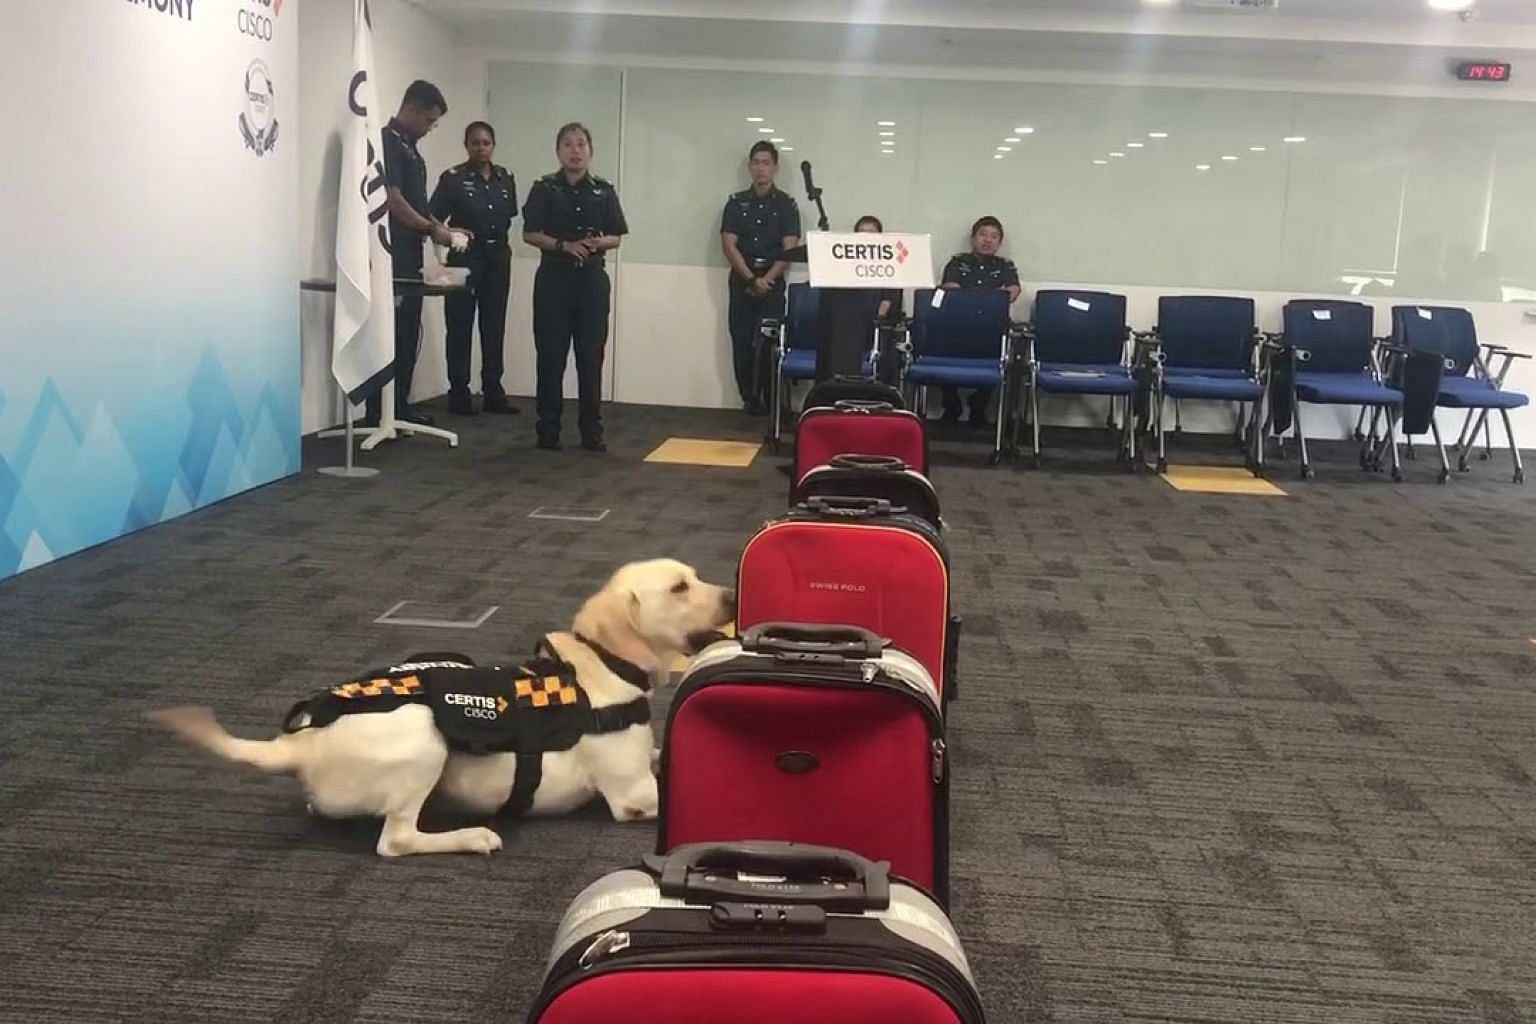 Sniffer dog Naomi identifies a luggage with planted explosive materials, during a simulated exercise